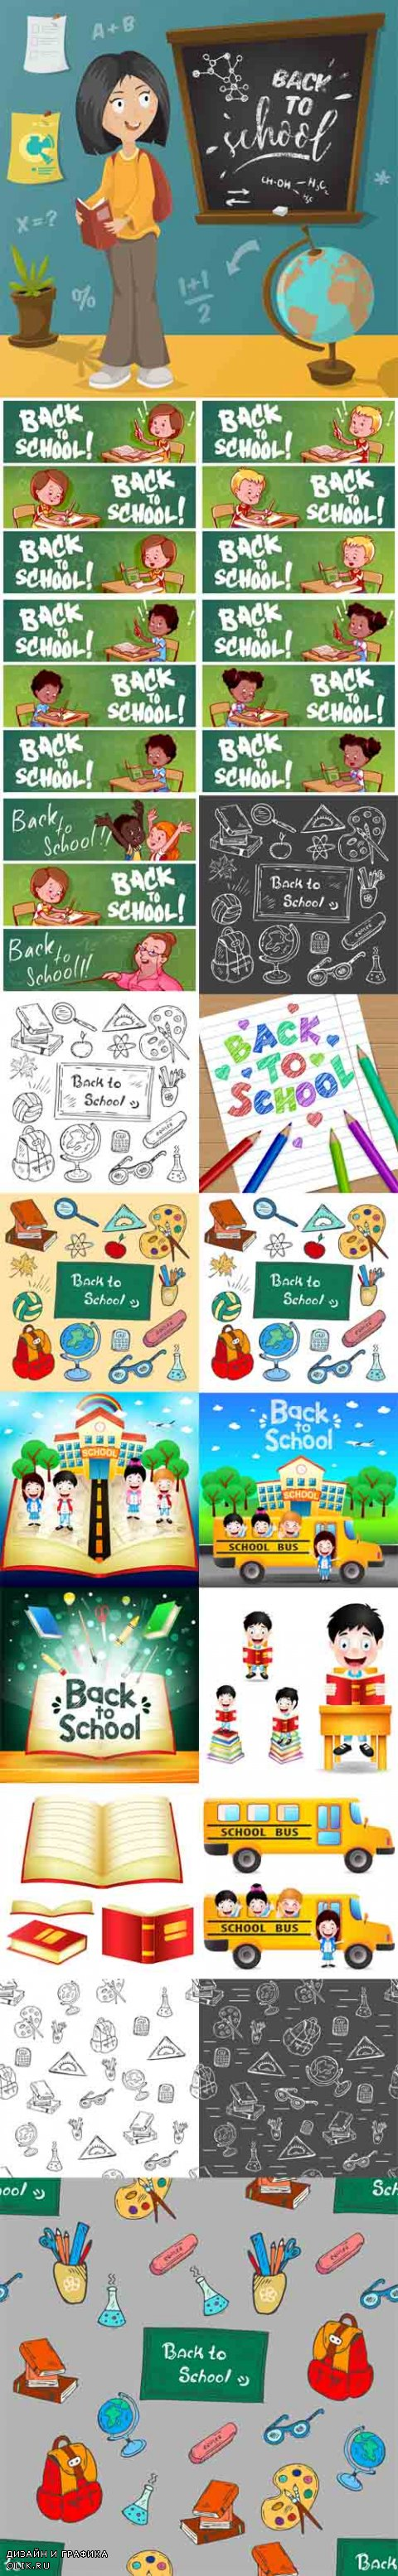 Vector Back to School Illustrations and Elements